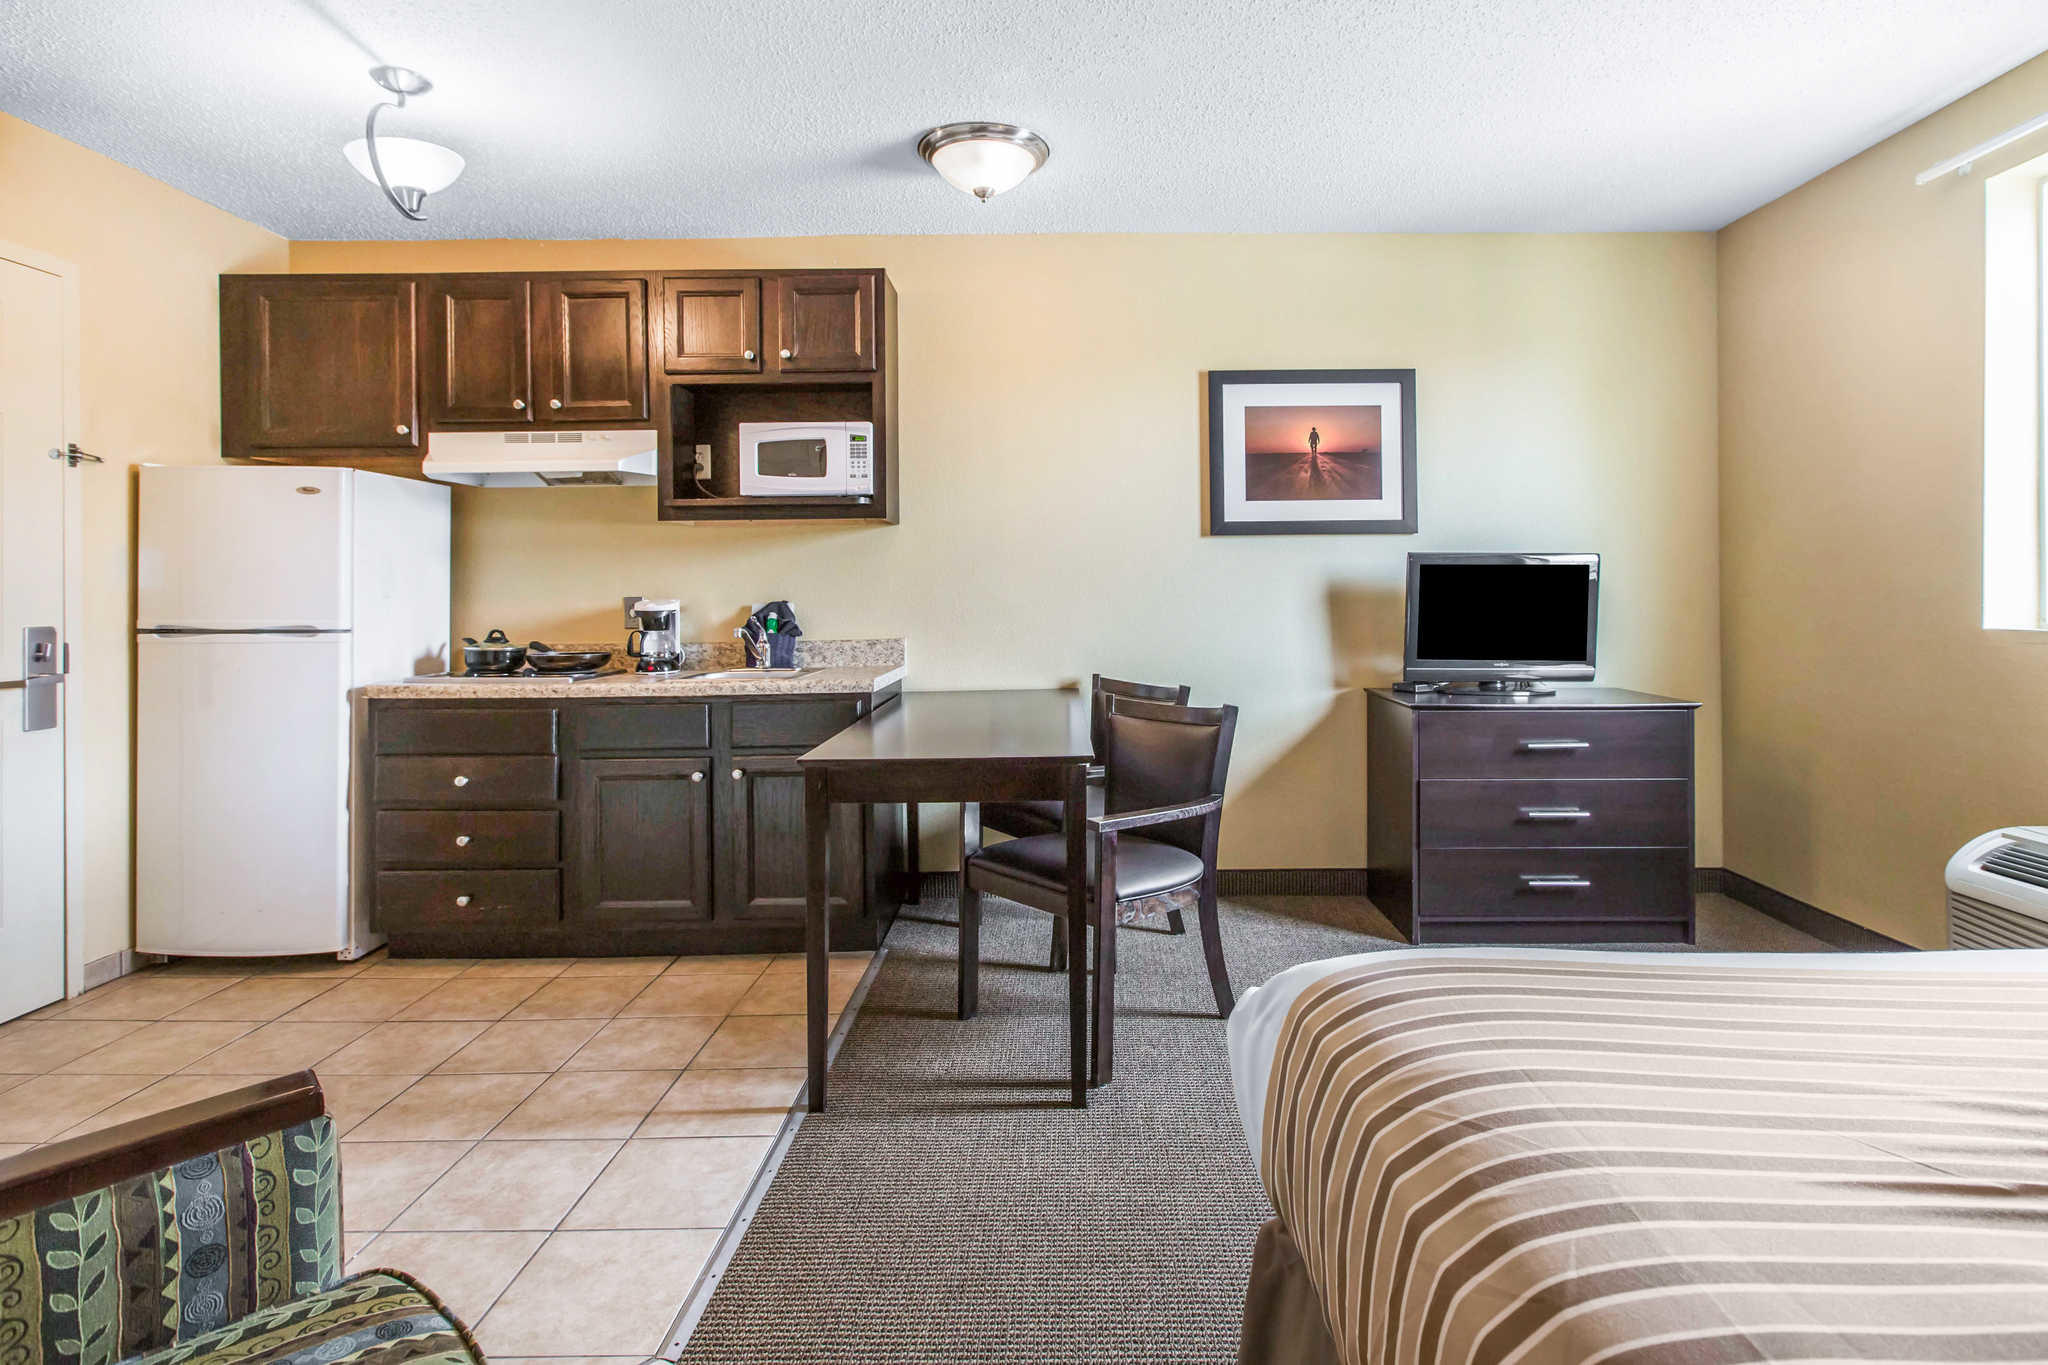 Suburban Extended Stay Hotel Camp Lejeune Jacksonville Nc